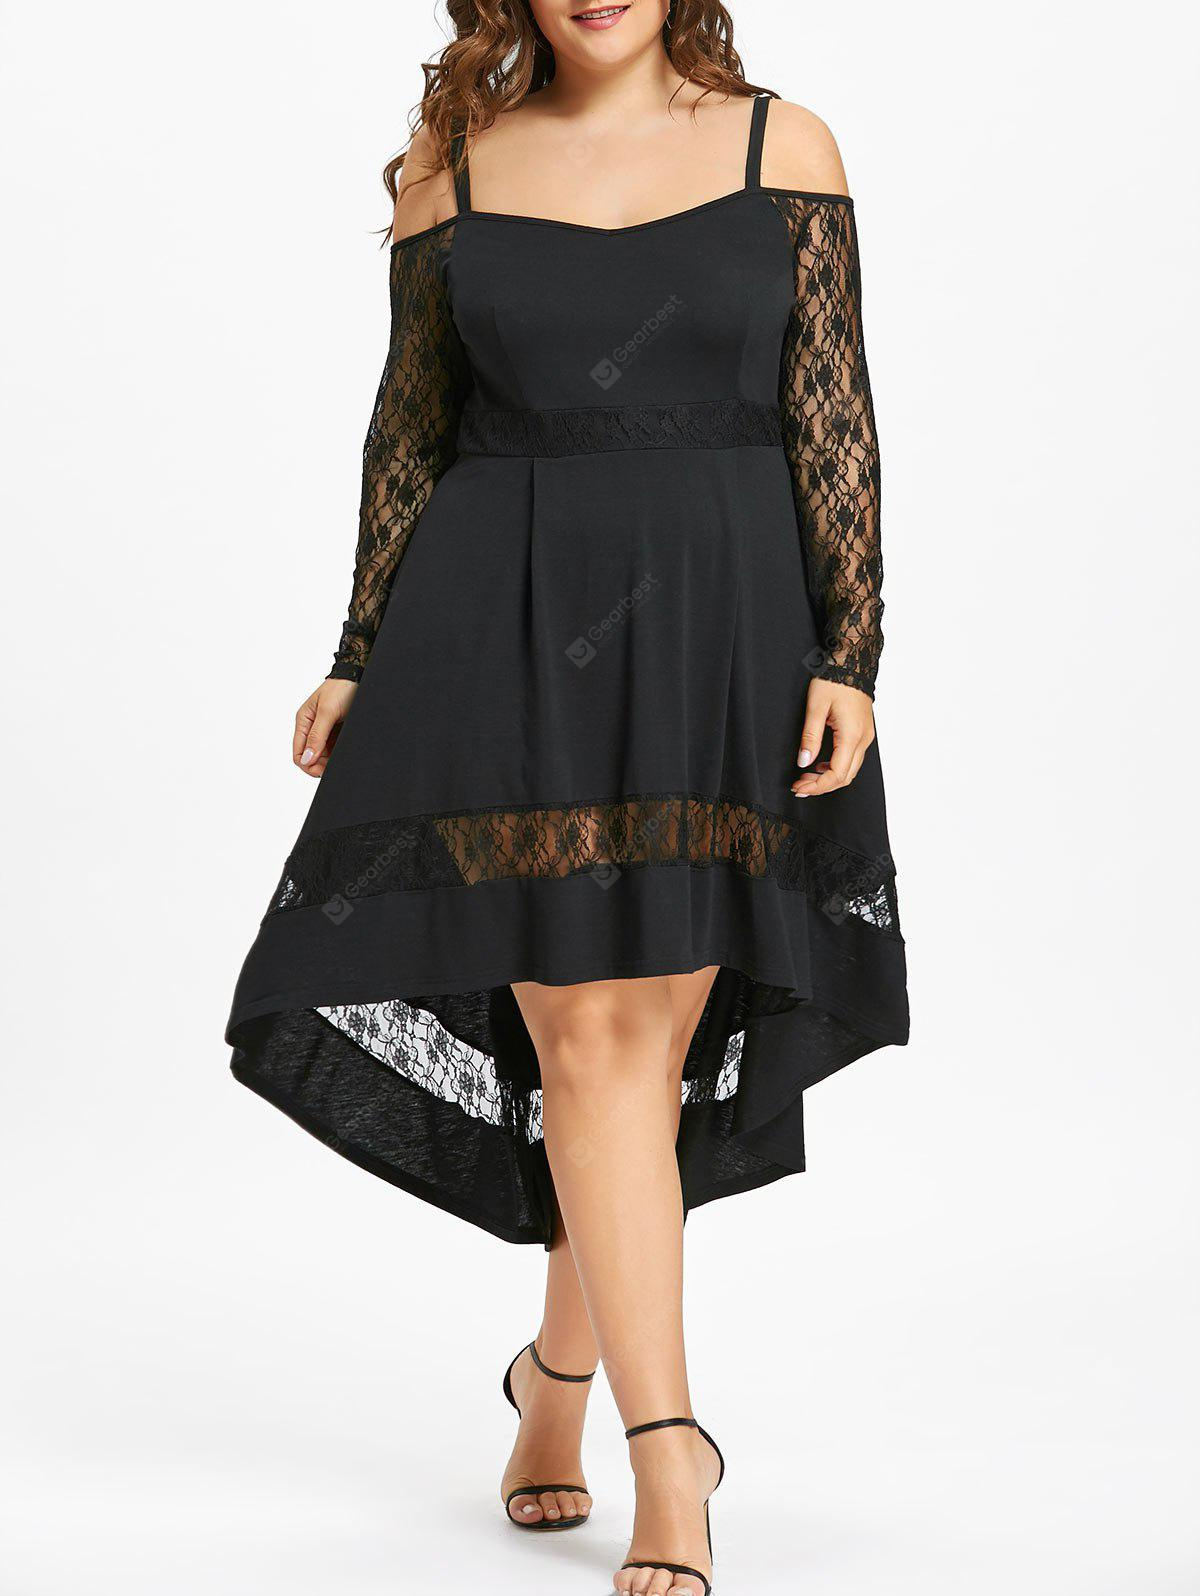 BLACK 3XL Plus Size Lace Insert Dip Hem Party Dress